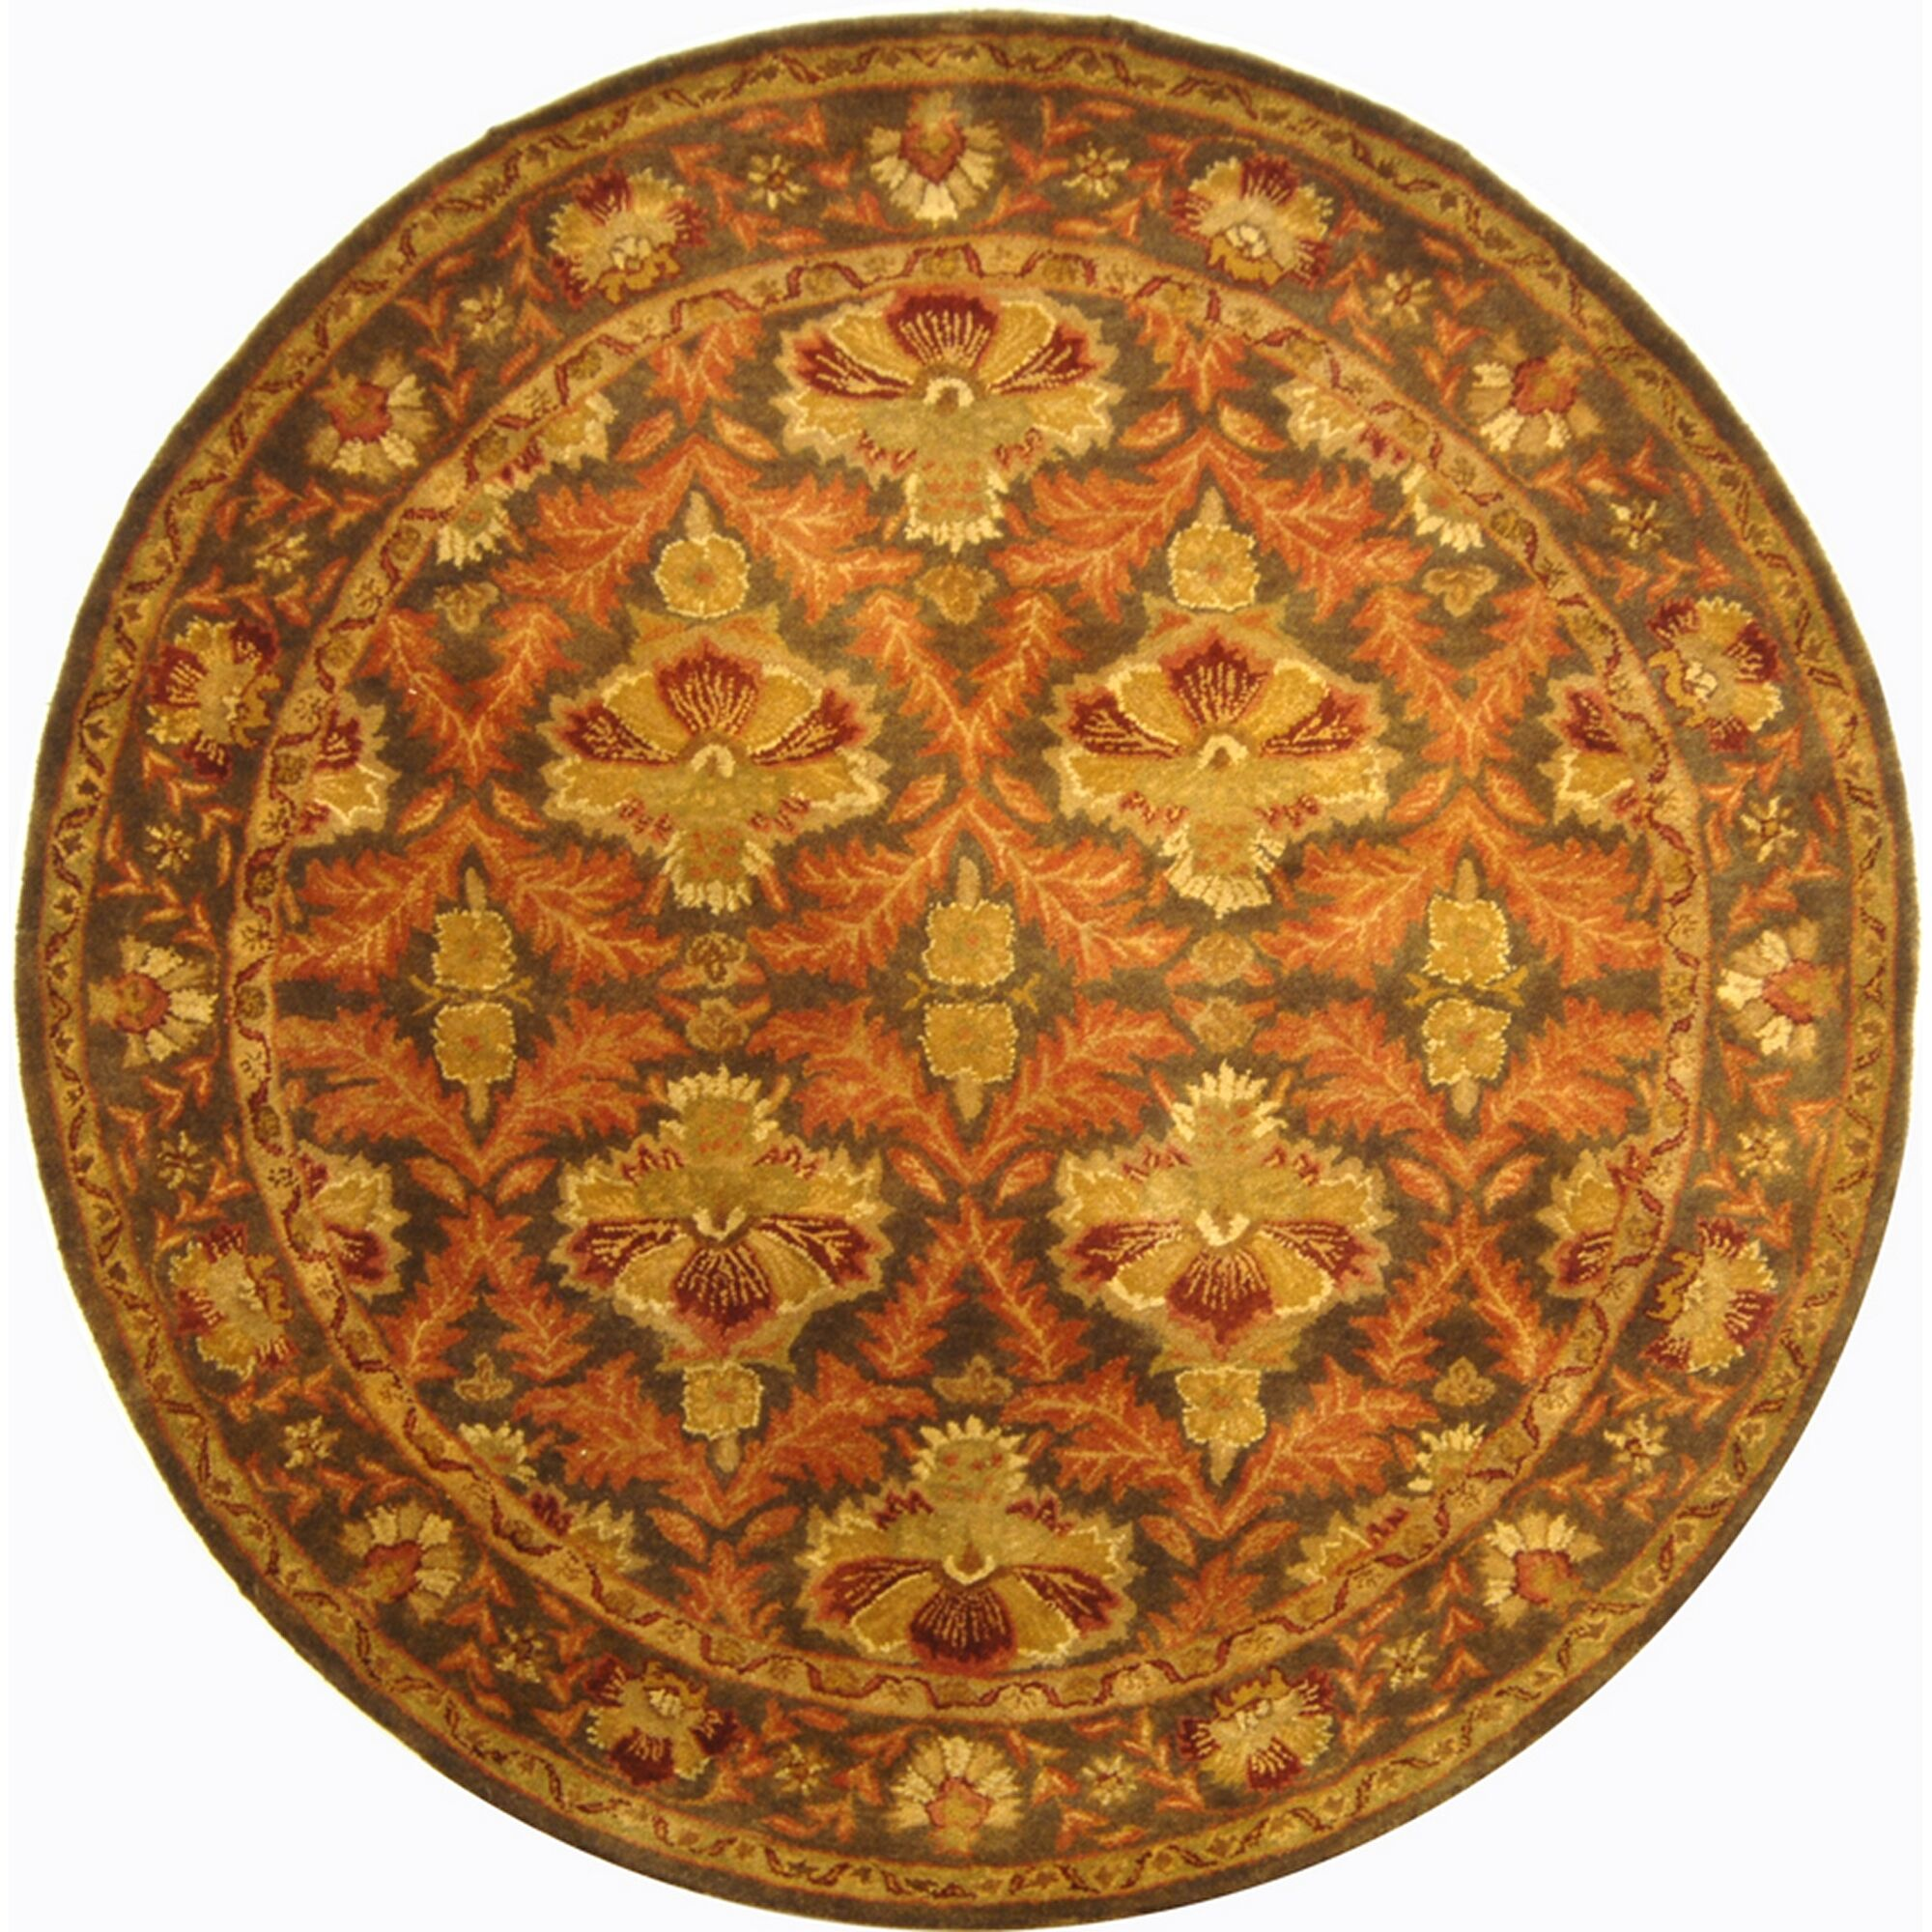 Dunbar Hand-Tufted/Hand-Hooked Wool Sage/Gold Area Rug Rug Size: Round 3'6